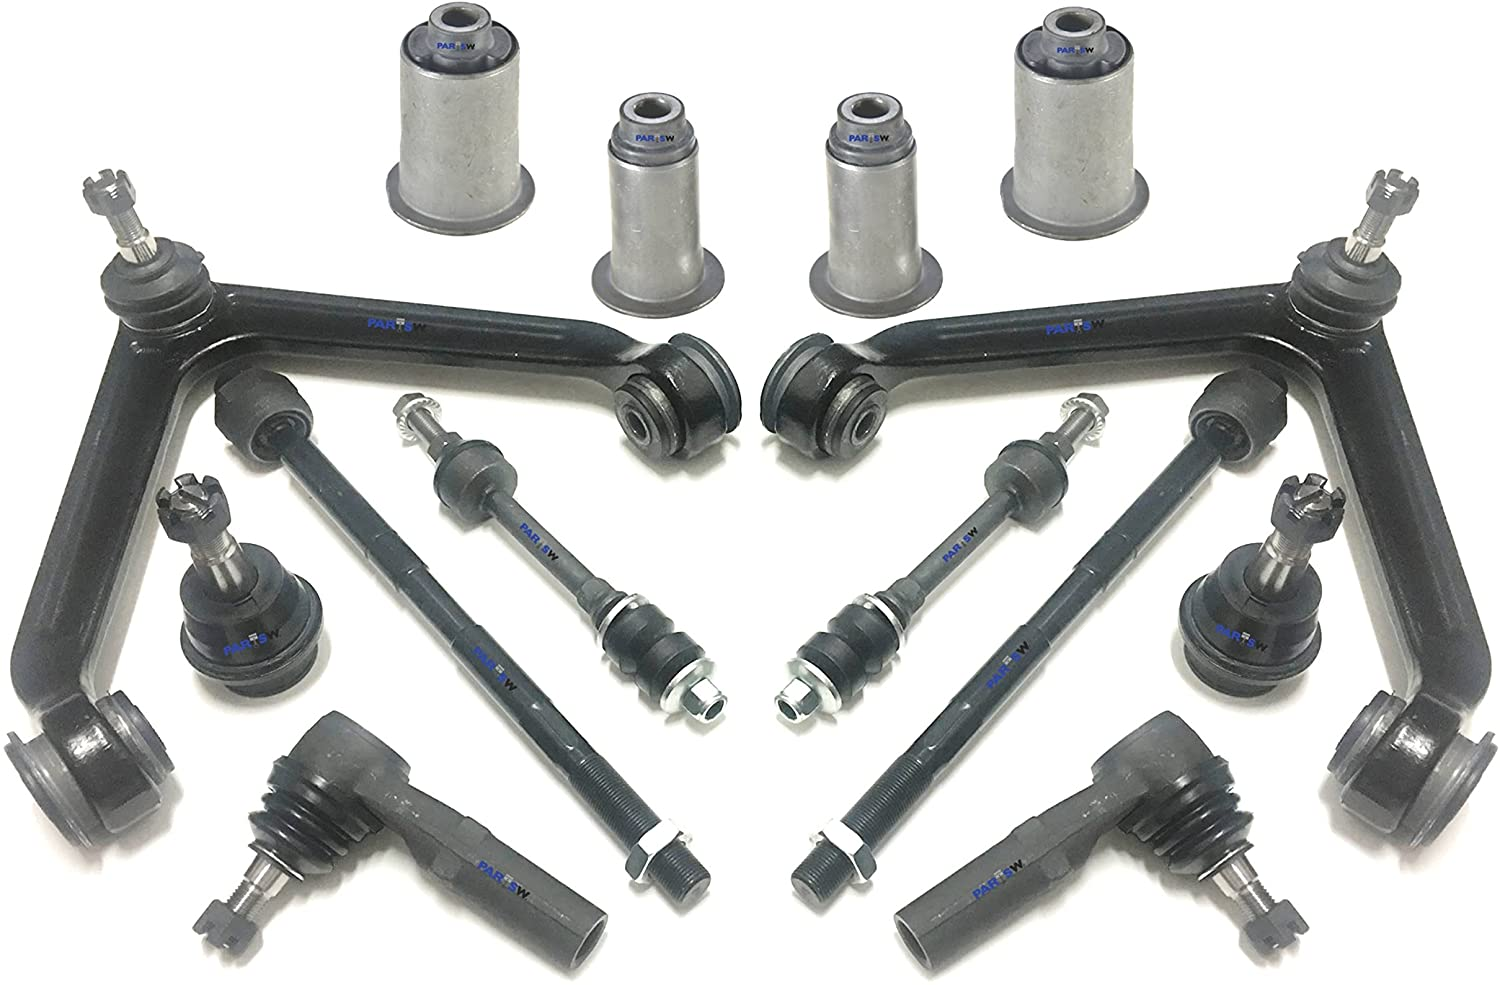 PartsW 14 Pc New Front Suspension Kit for Dodge Ram 1500 (2002-2005) RWD Models Only Upper Control Arms with Ball Joints Assembly, Tie Rod Ends Ball Joints & Sway Bars